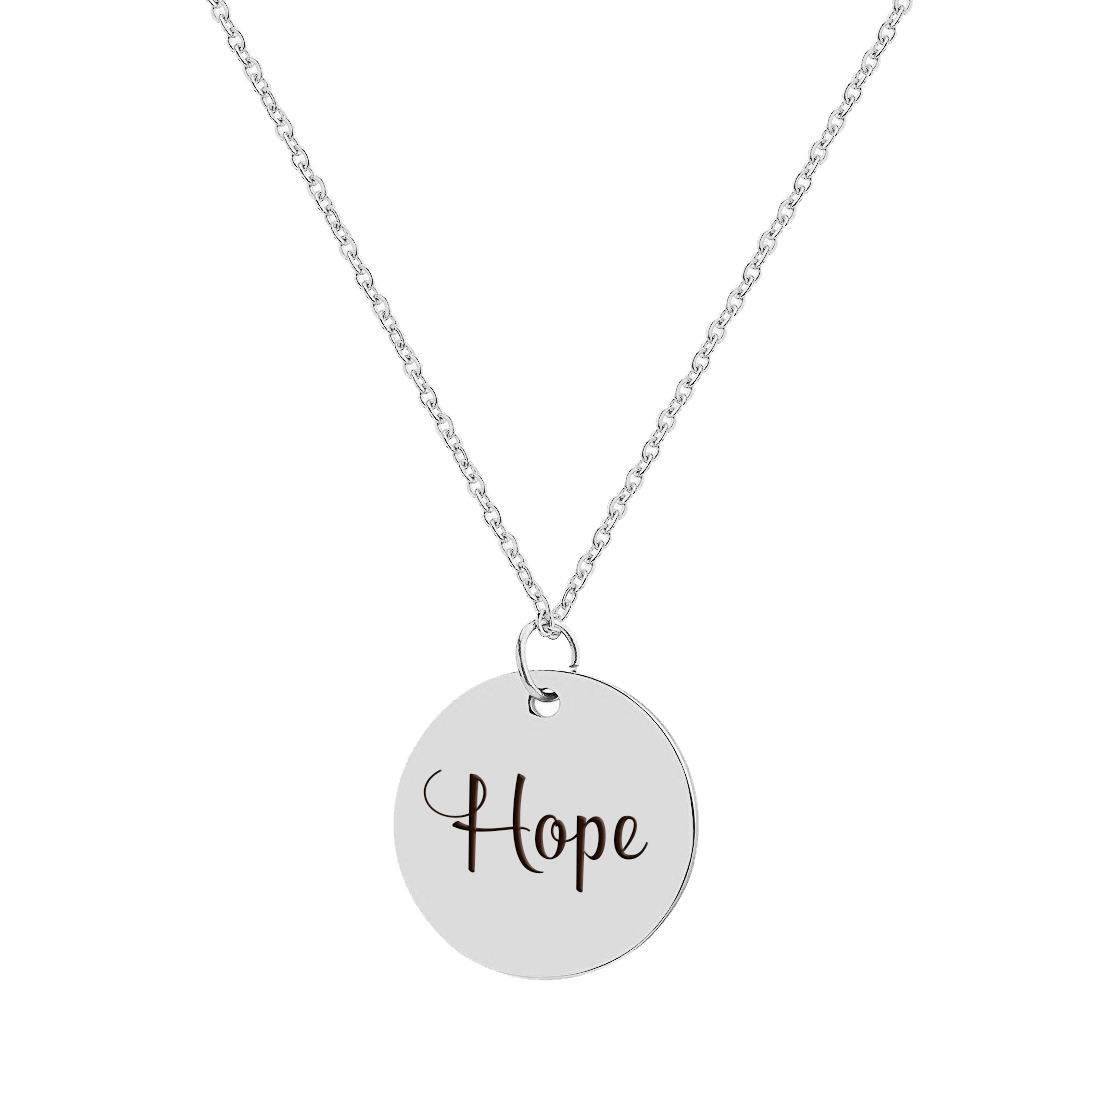 Inspirational Necklace Silver Jewelry Gift for Women and Girls Motivational Quote Lion King Quote Pendant